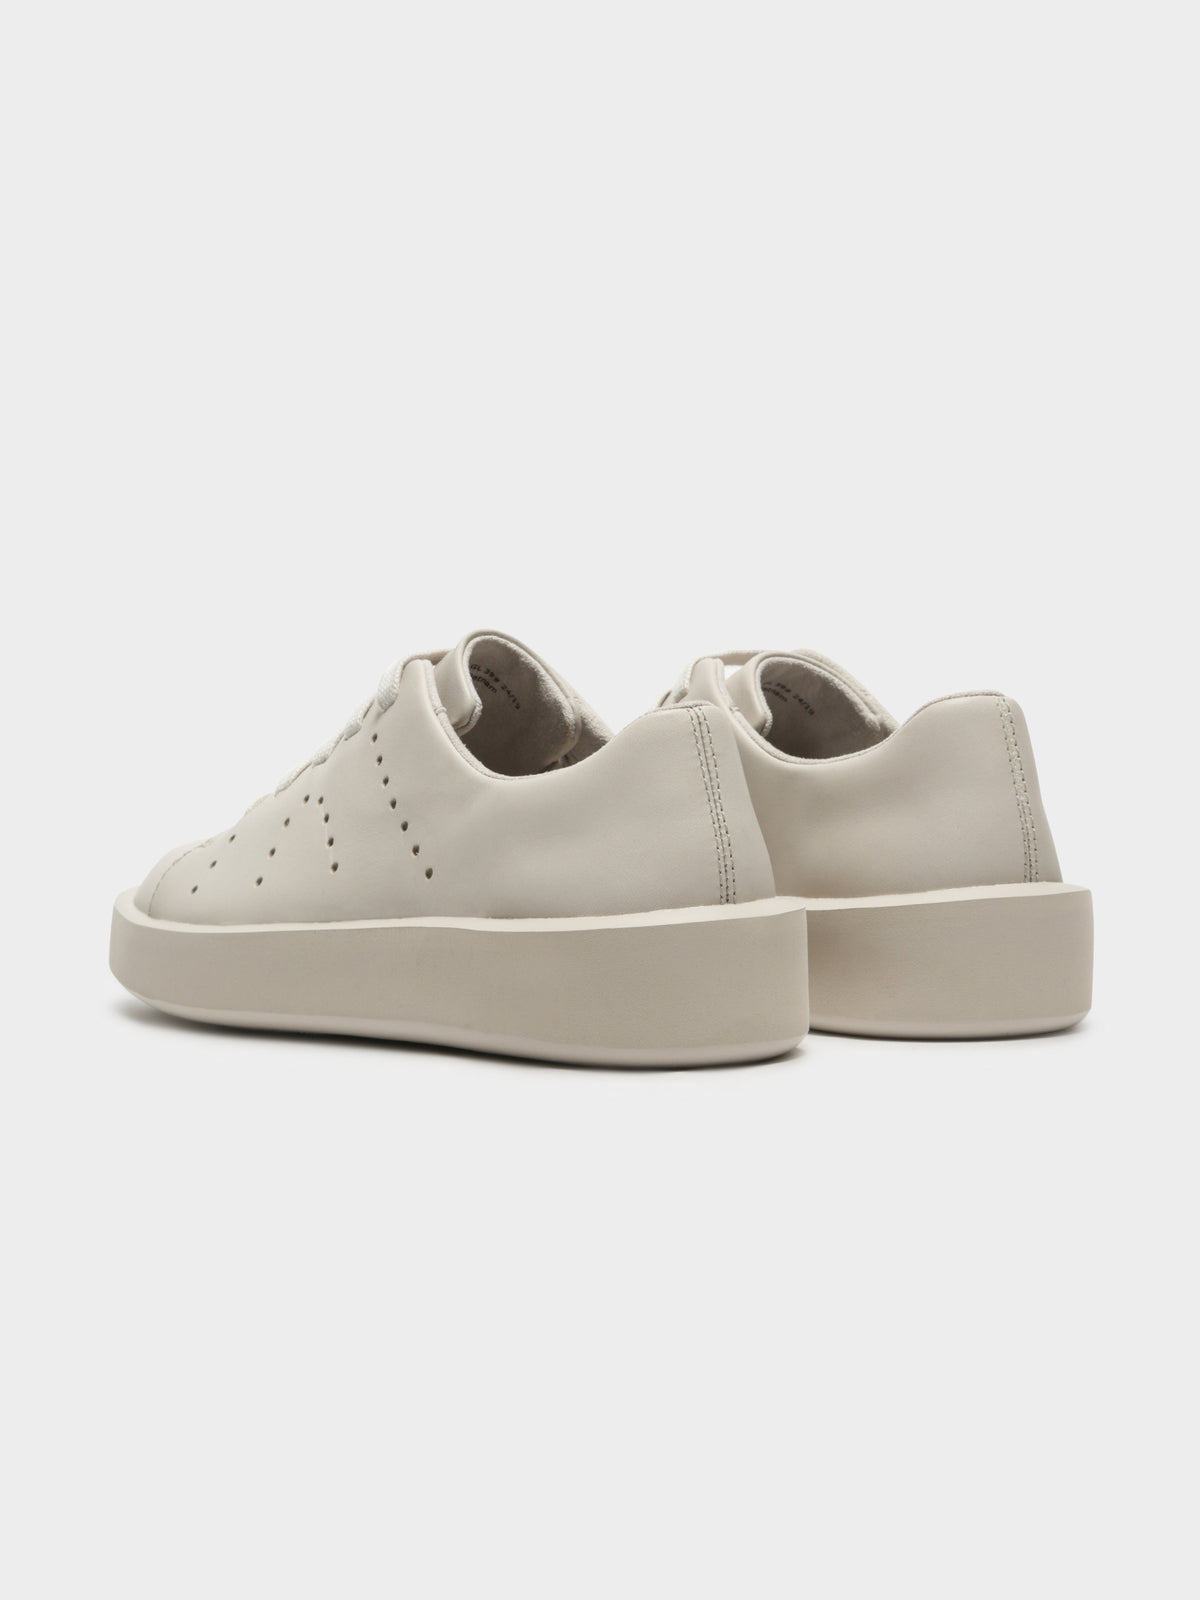 Womens Courb Sneakers in Beige